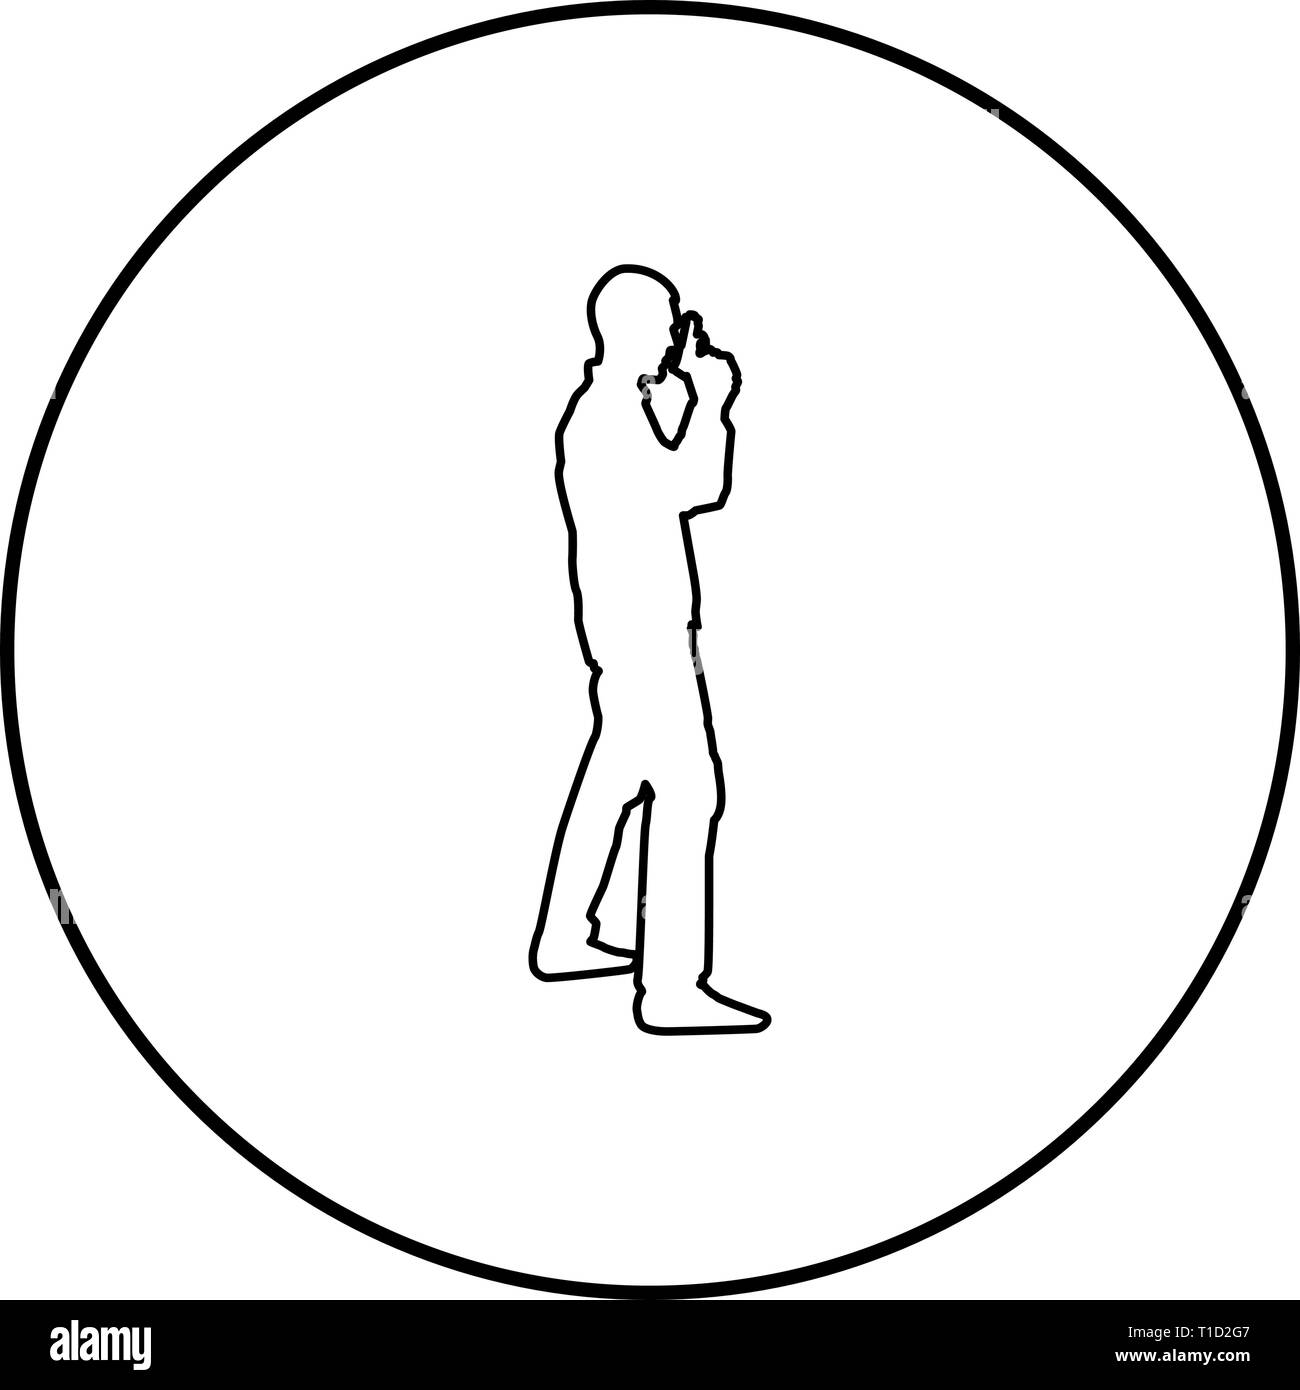 Man with gun Hazard concept icon outline black color vector in circle round illustration flat style simple image Stock Vector